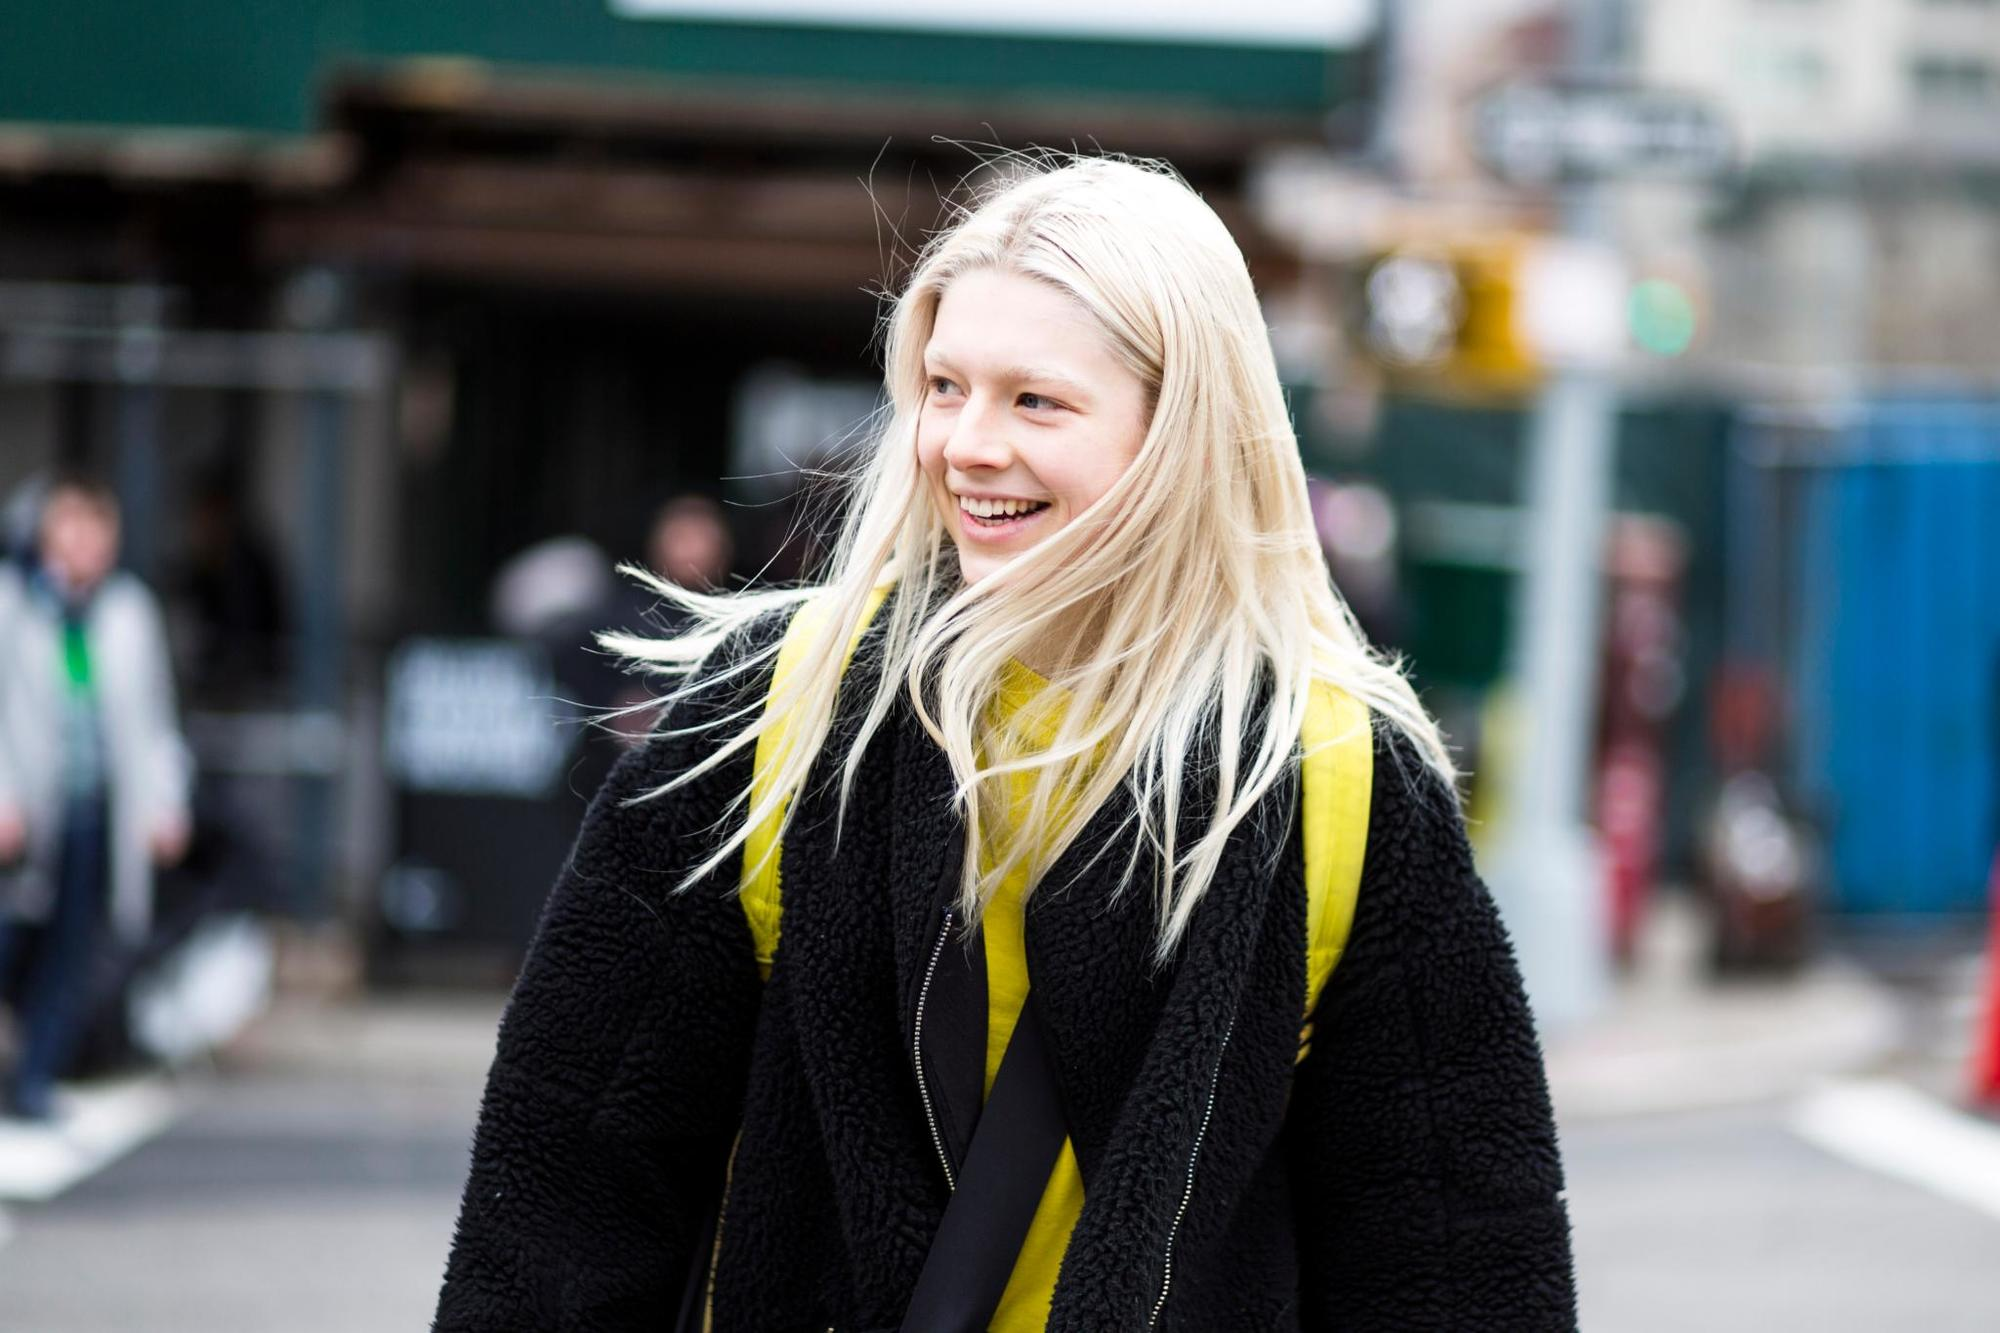 Purple shampoo: Close-up street style shot of a woman with baby blonde long hair